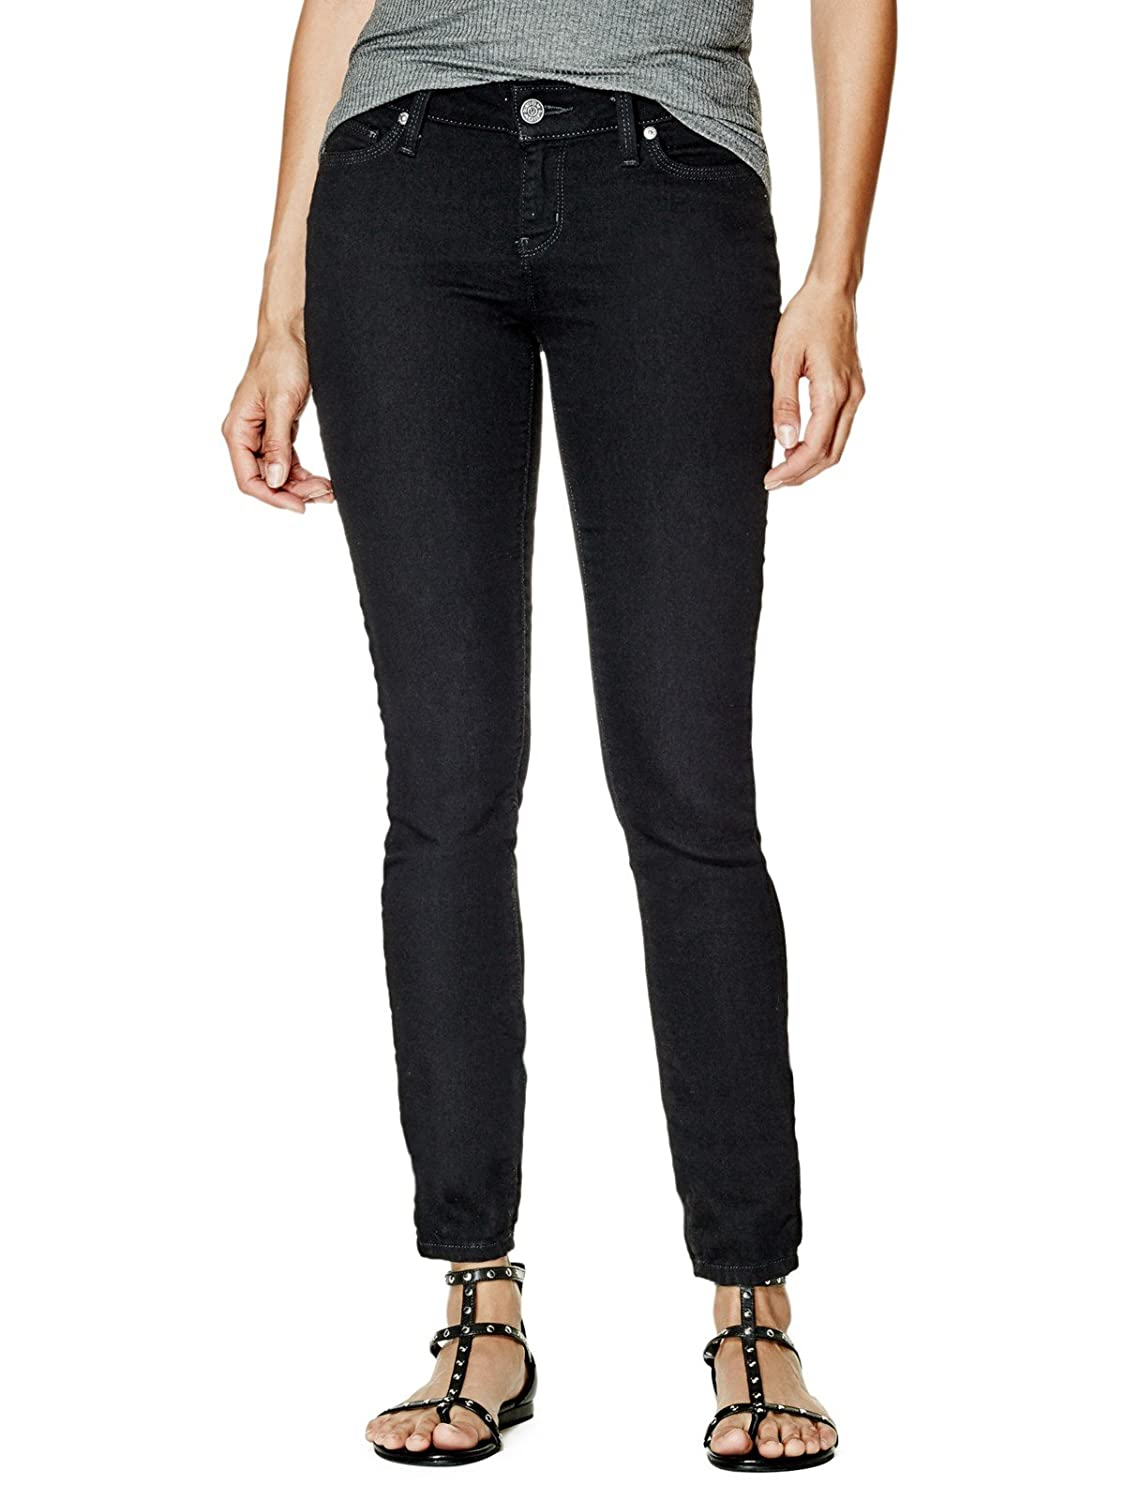 Guess Factory Women's Sienna Curvy Skinny Jeans GuessFactory